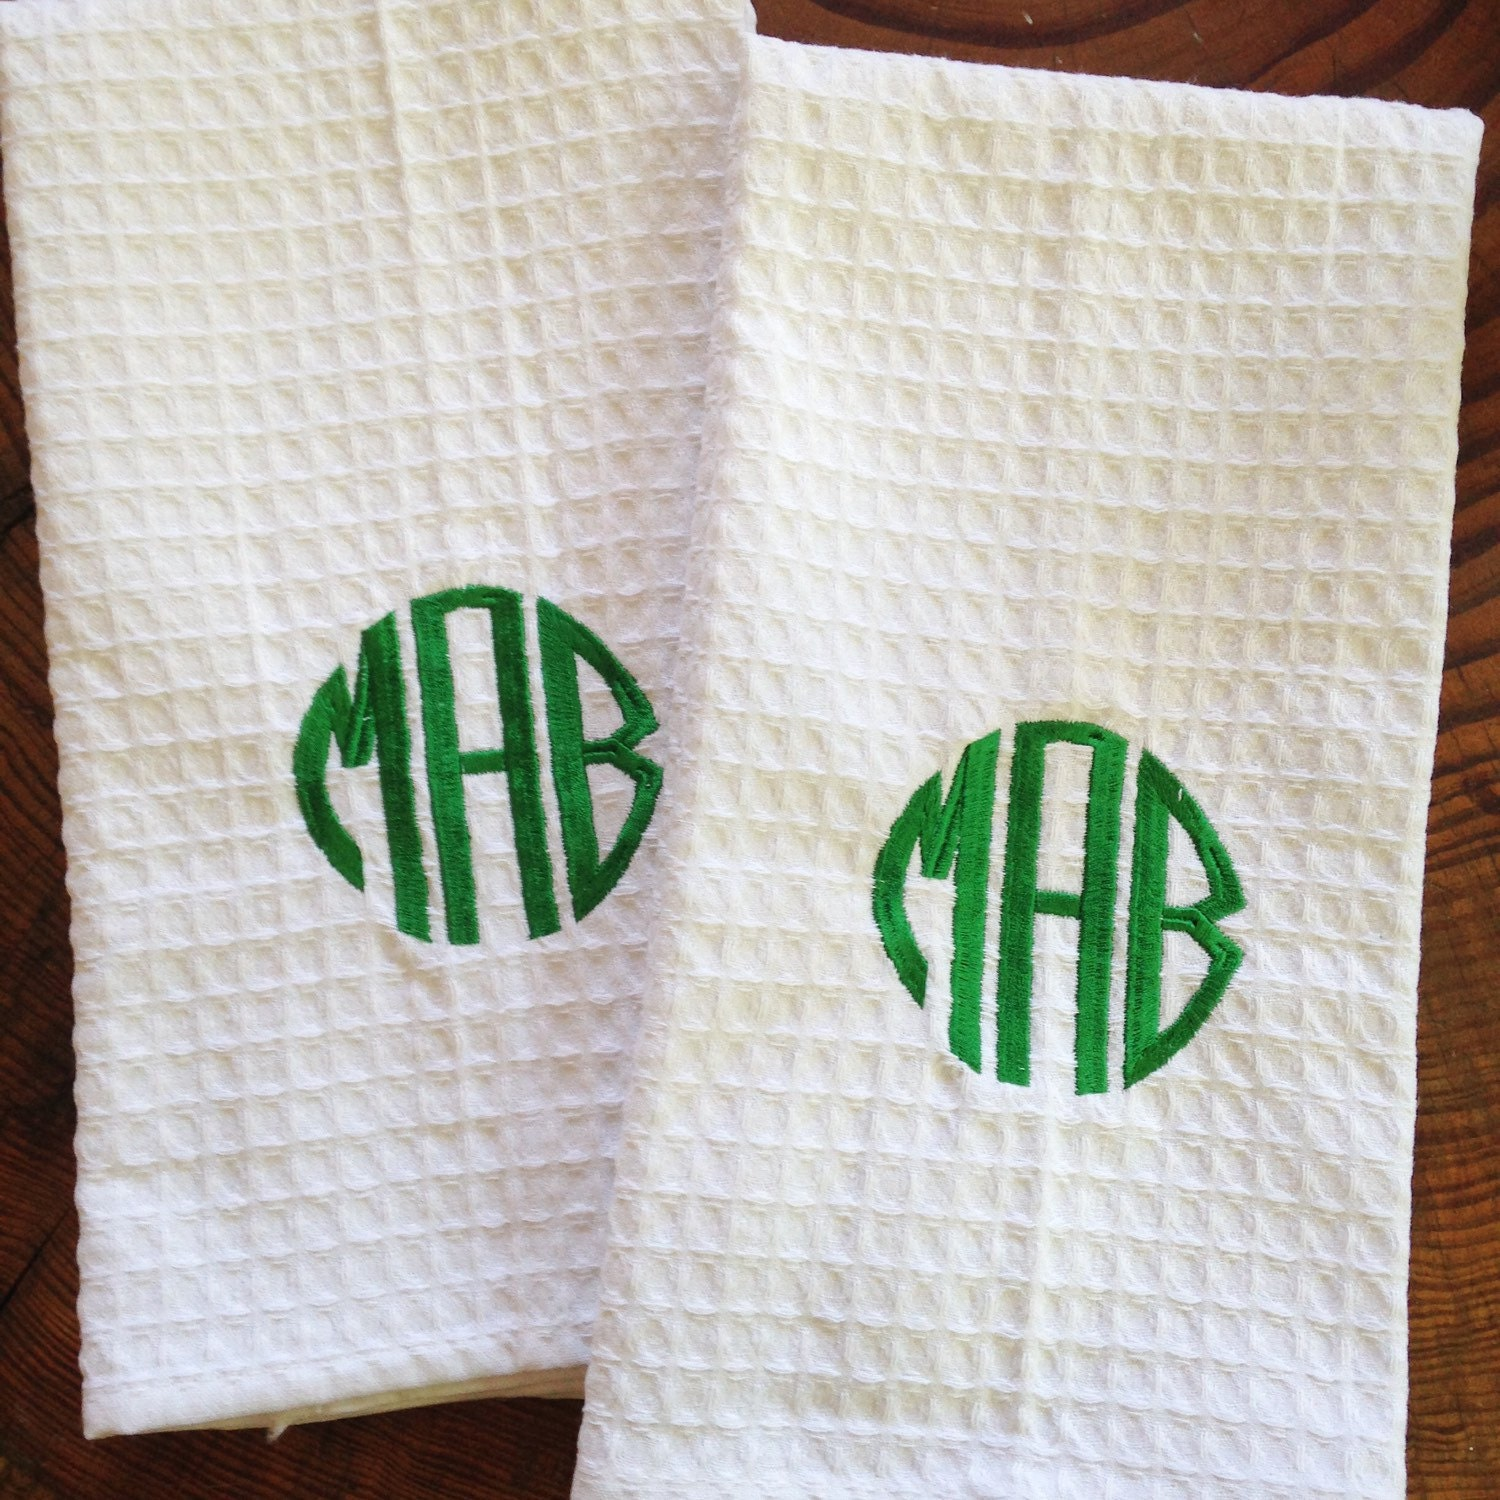 Monogram Towels For Bathroom: Monogram Waffle Weave Kitchen Towel / Monogram Bath Towel